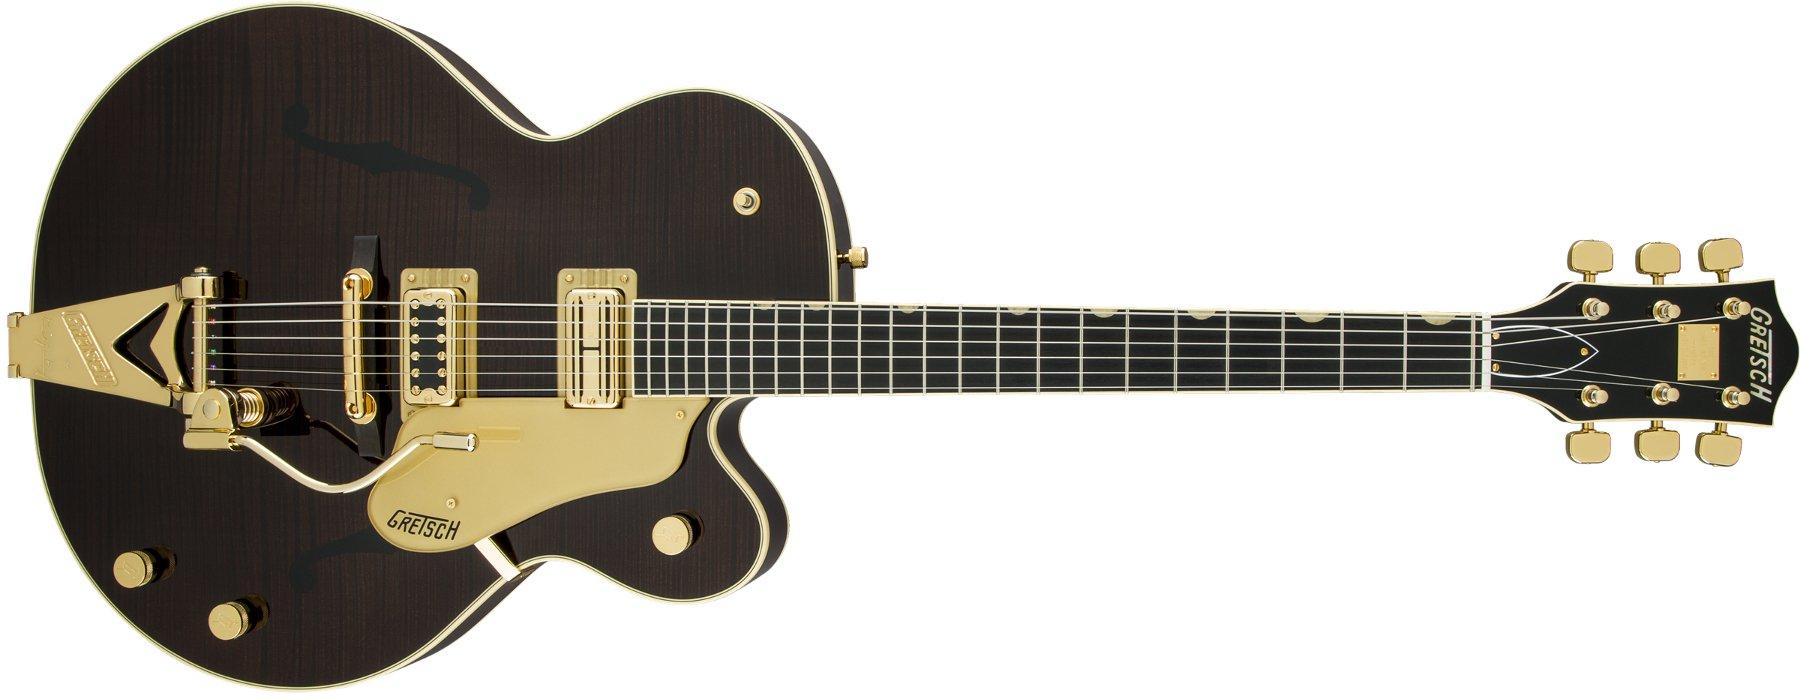 Vintage Select '59 Chet Atkins Country Gentleman Hollow Body with Bigsby, Tiger Flame Maple